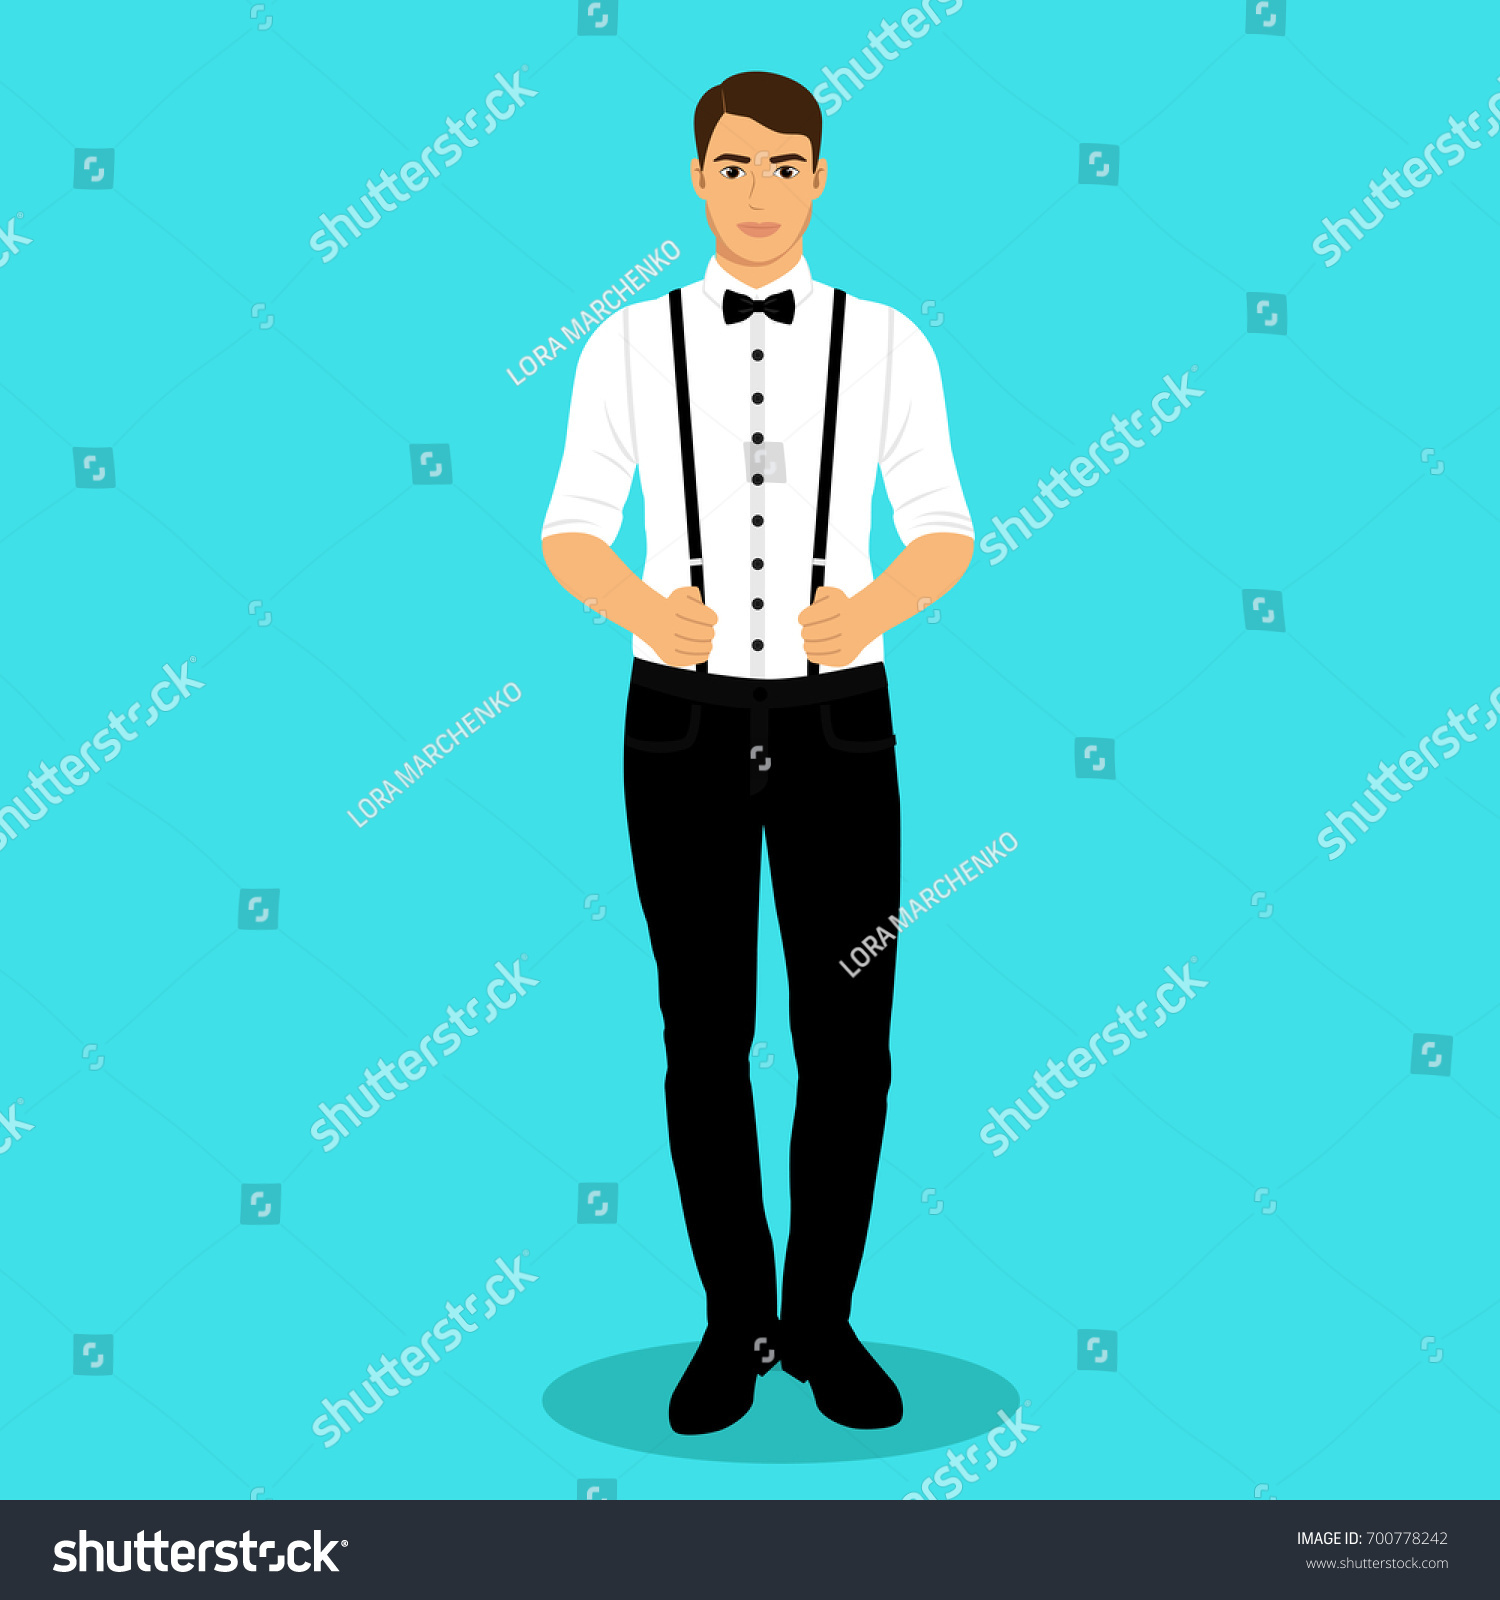 Man Suspenders Groom Clothing Wedding Mens Stock Illustration ...